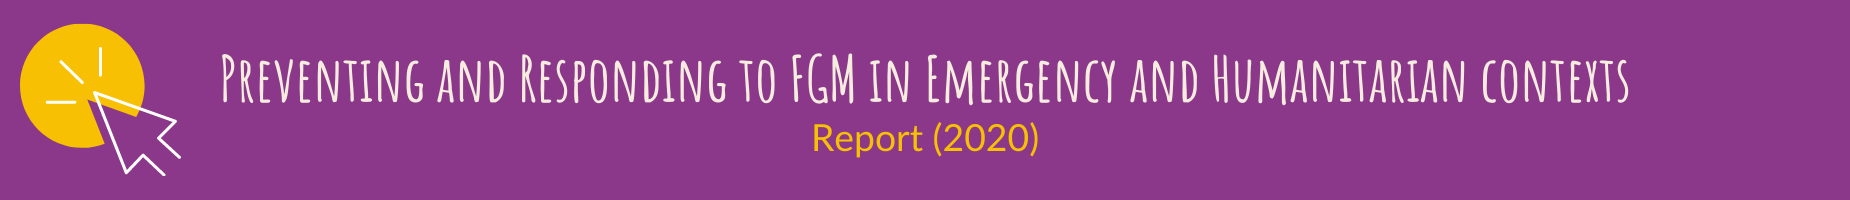 Preventing and Responding to FGM in Emergency and Humanitarian contexts - Report (2020)